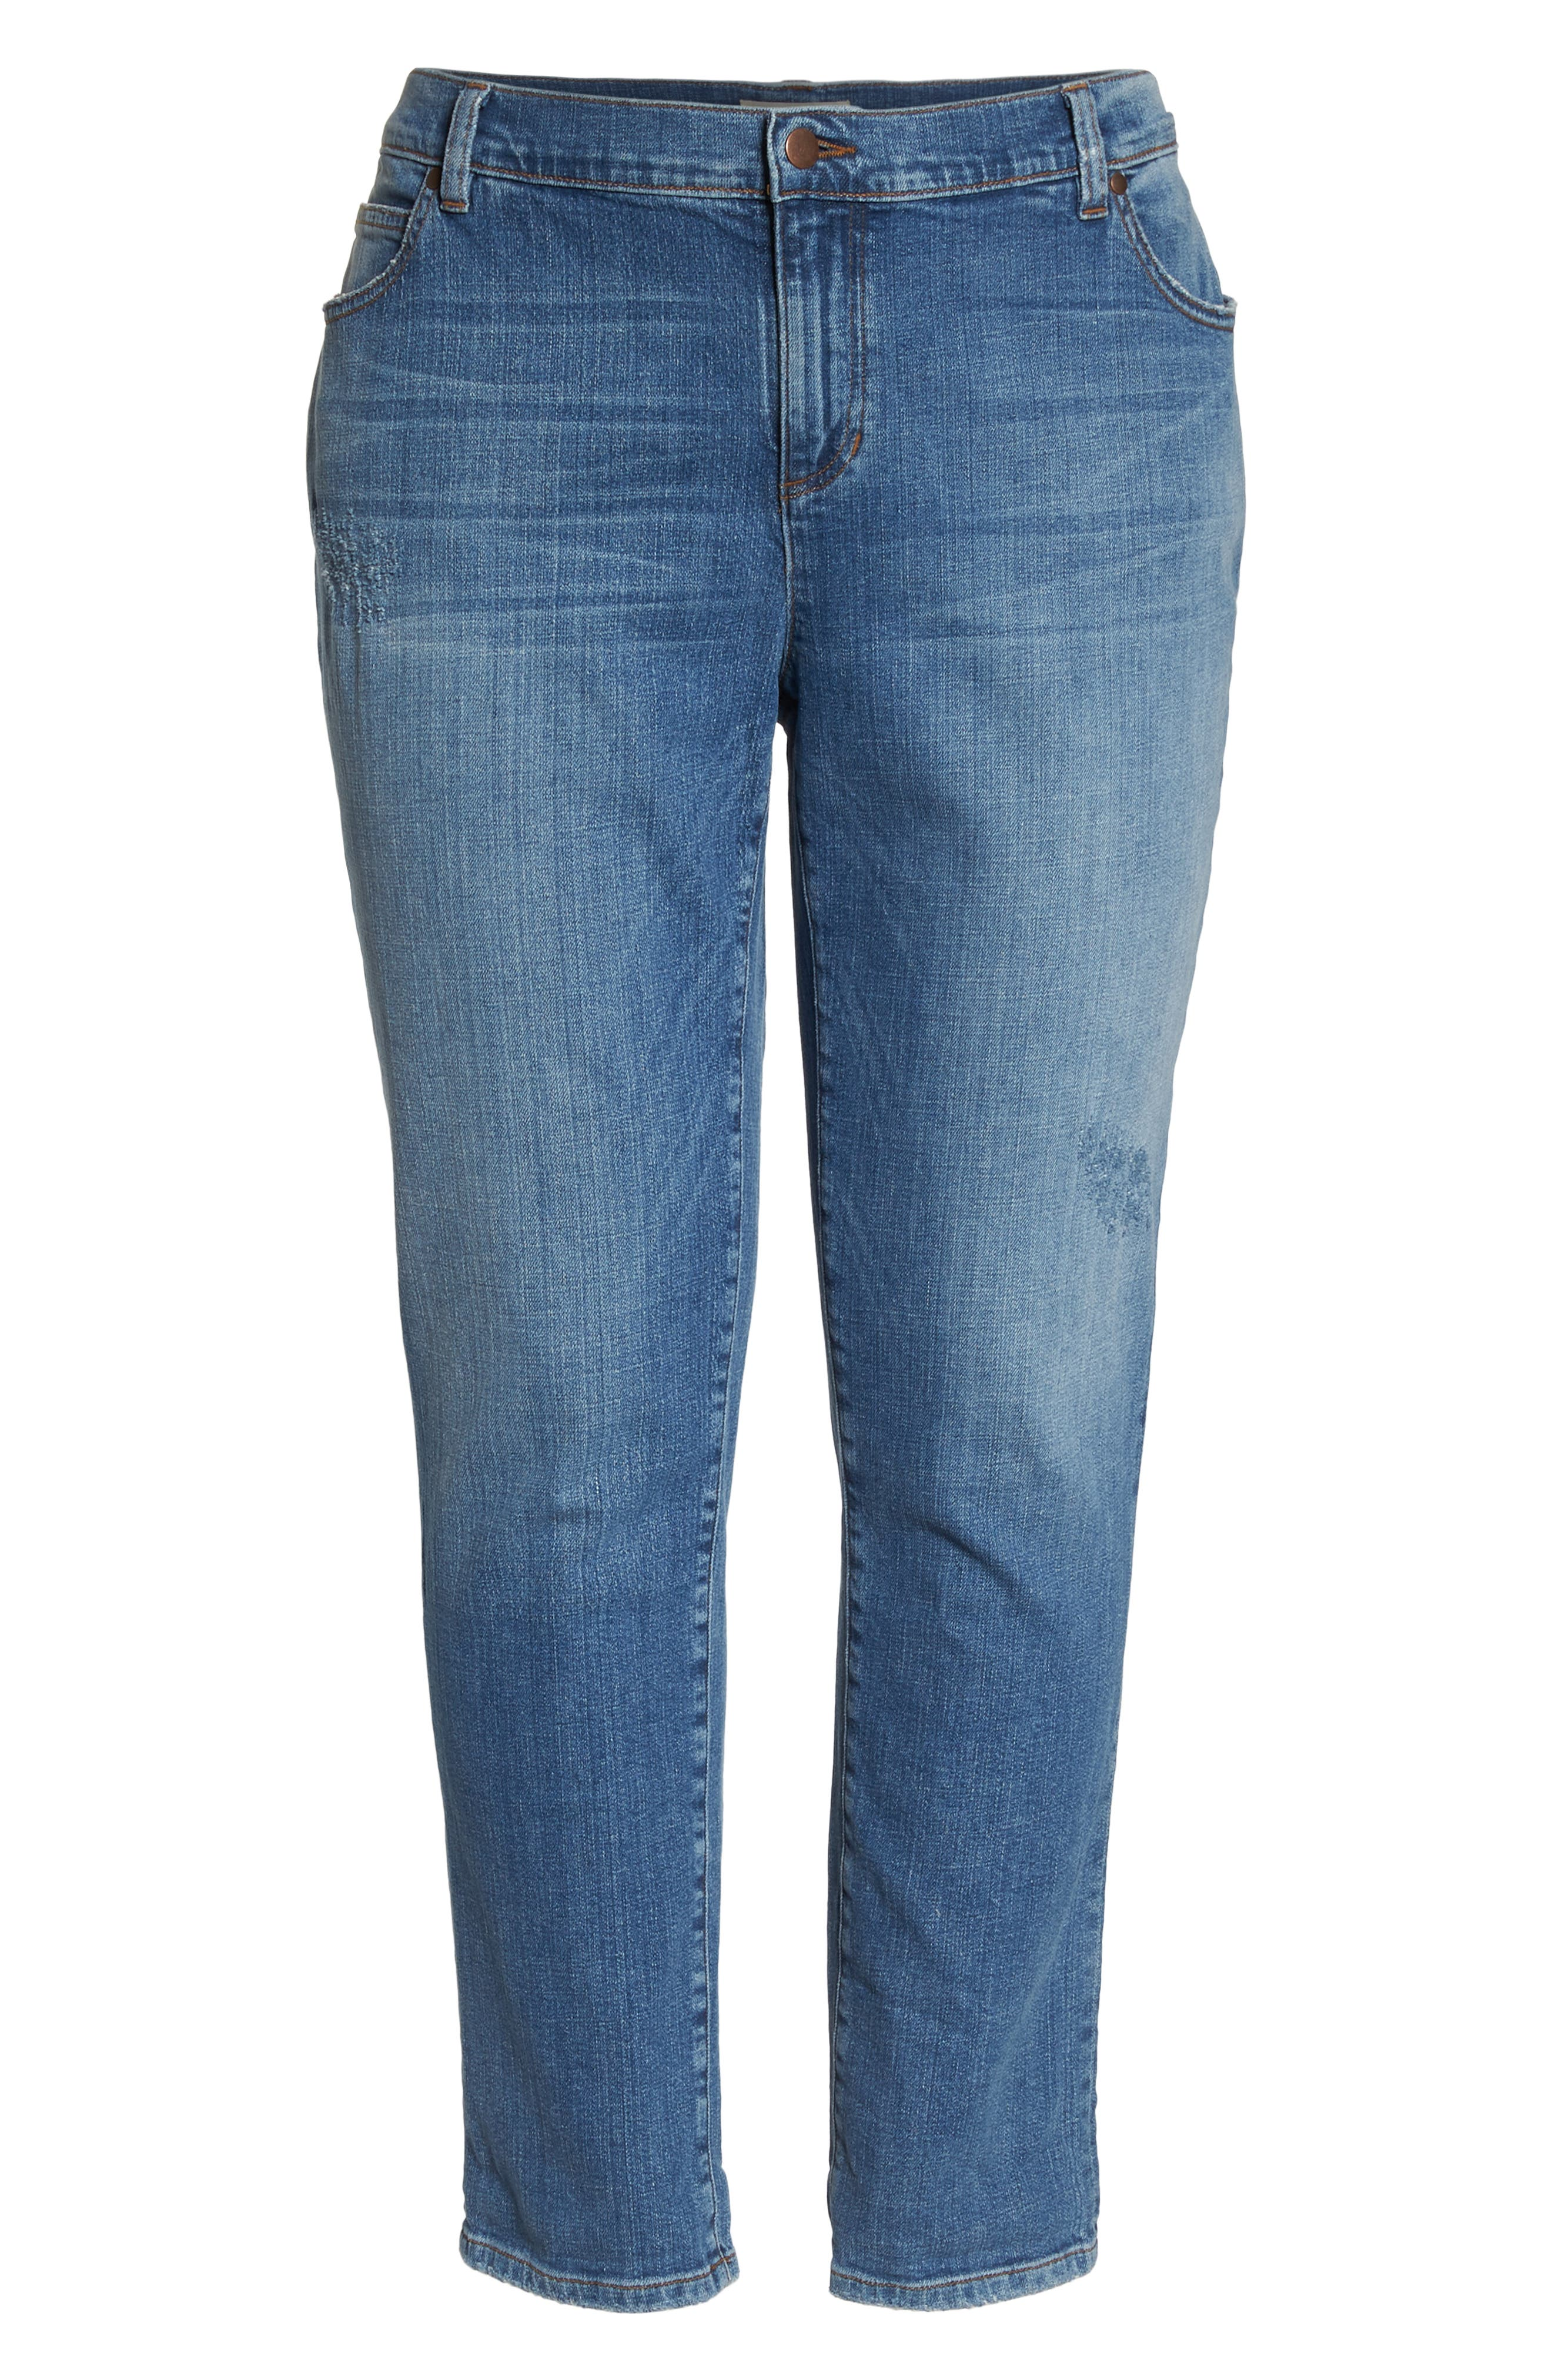 EILEEN FISHER,                             Stretch Organic Cotton Boyfriend Jeans,                             Alternate thumbnail 7, color,                             ABRADED SKY BLUE